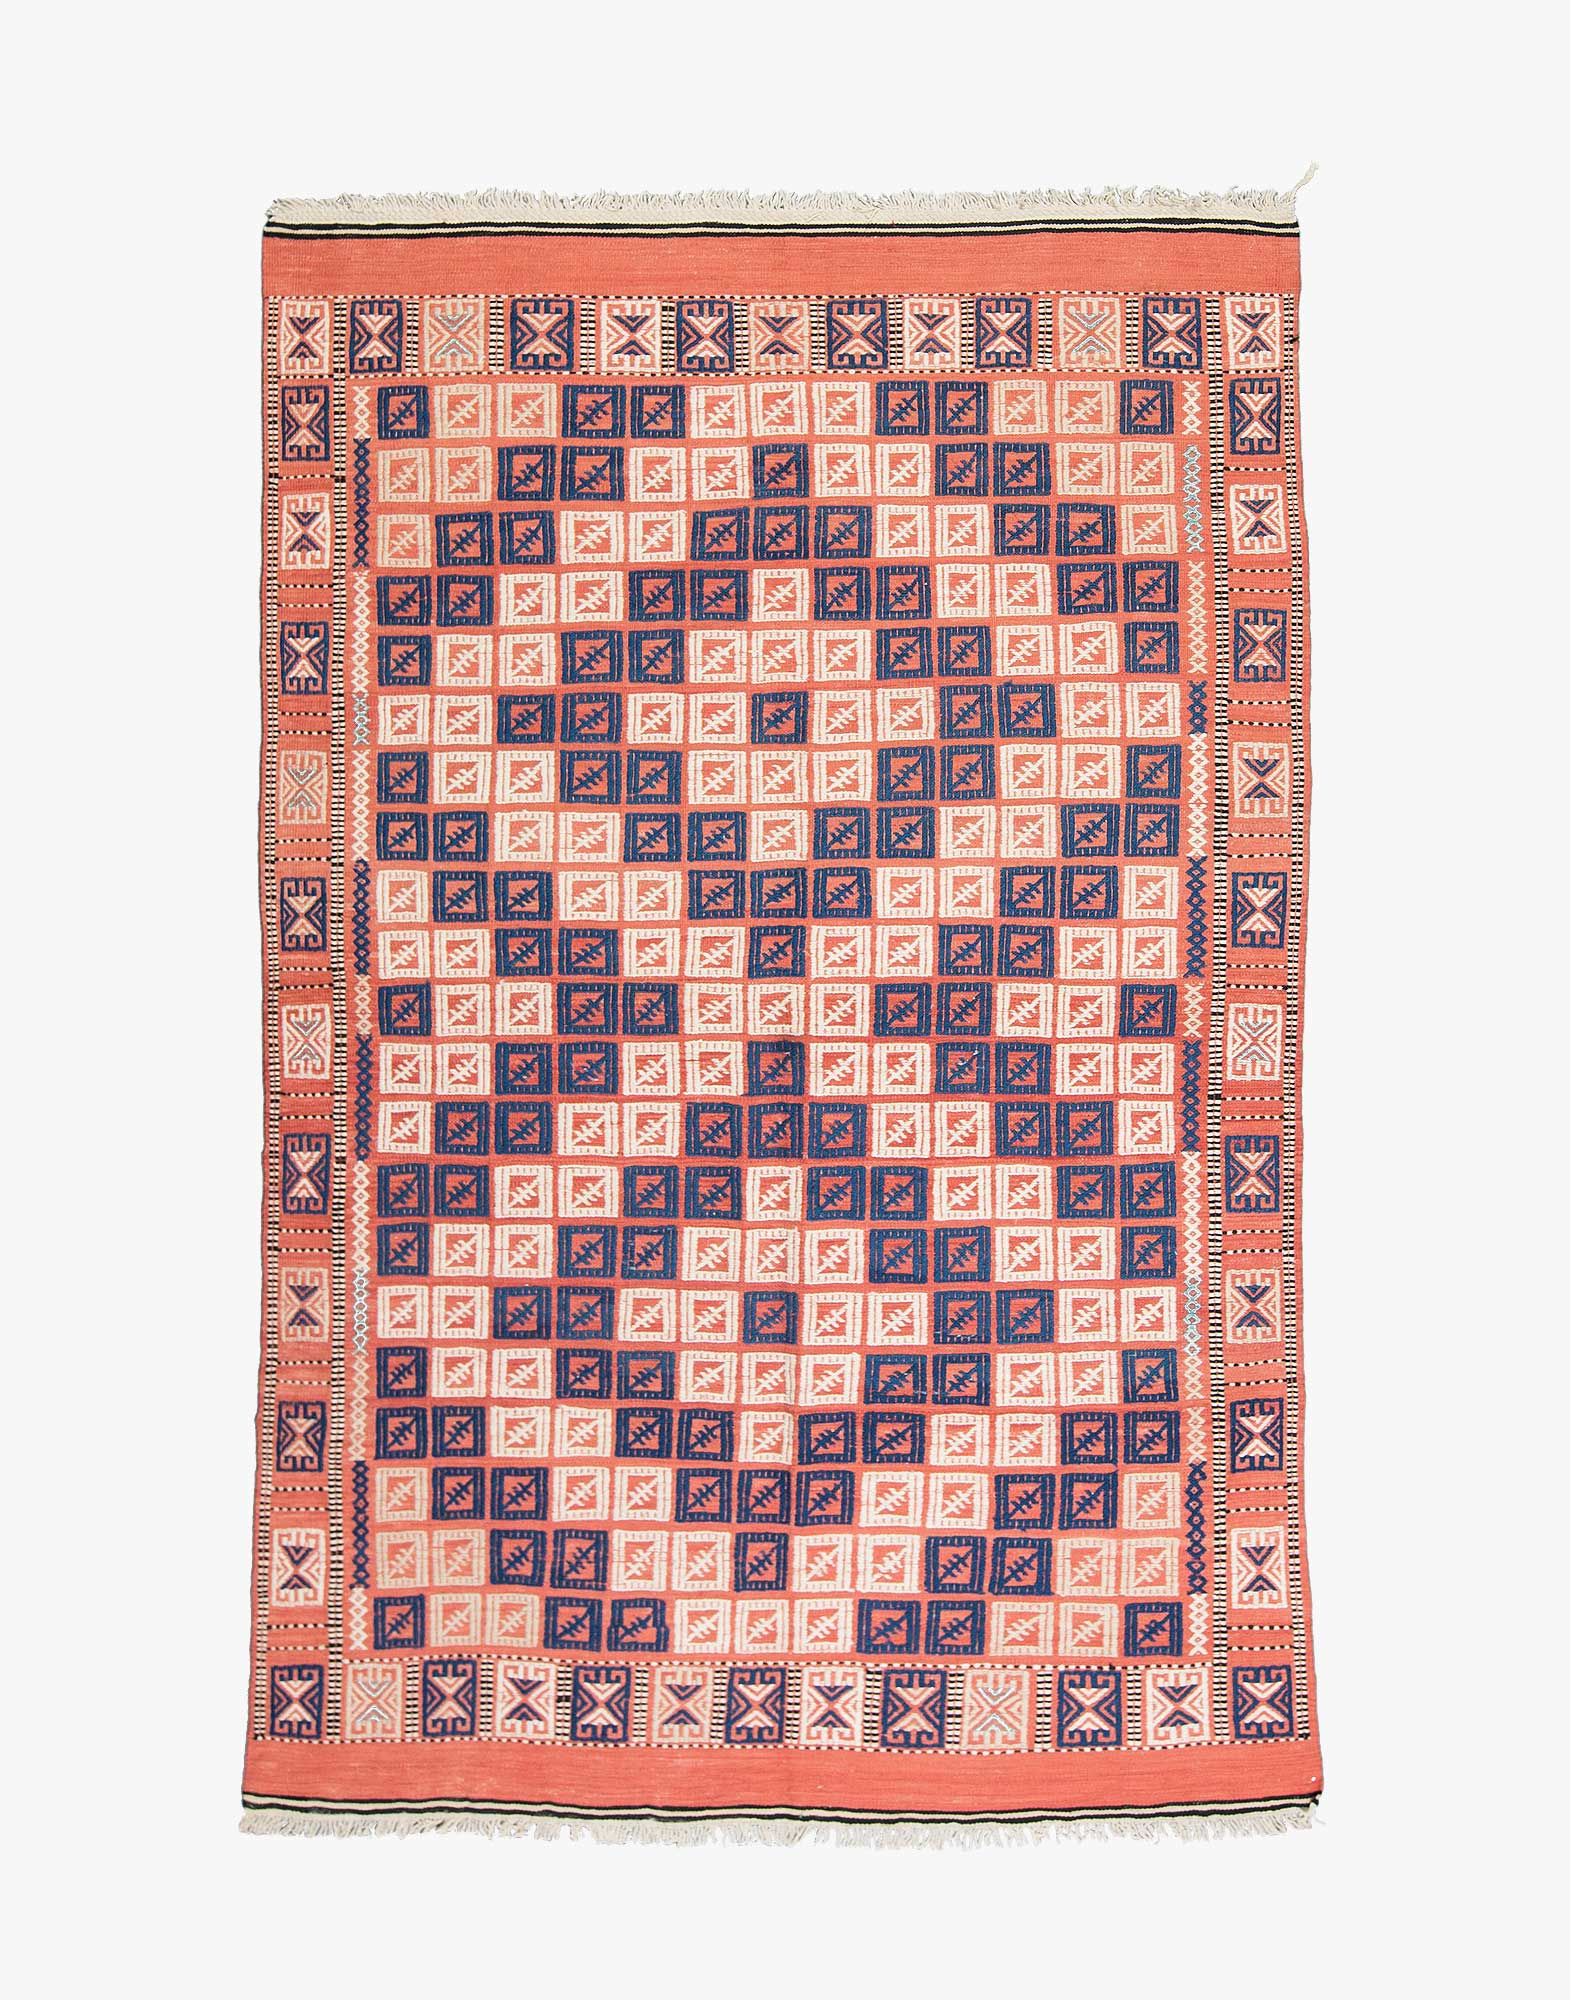 Çanakkale Zili Embroidered Kilim